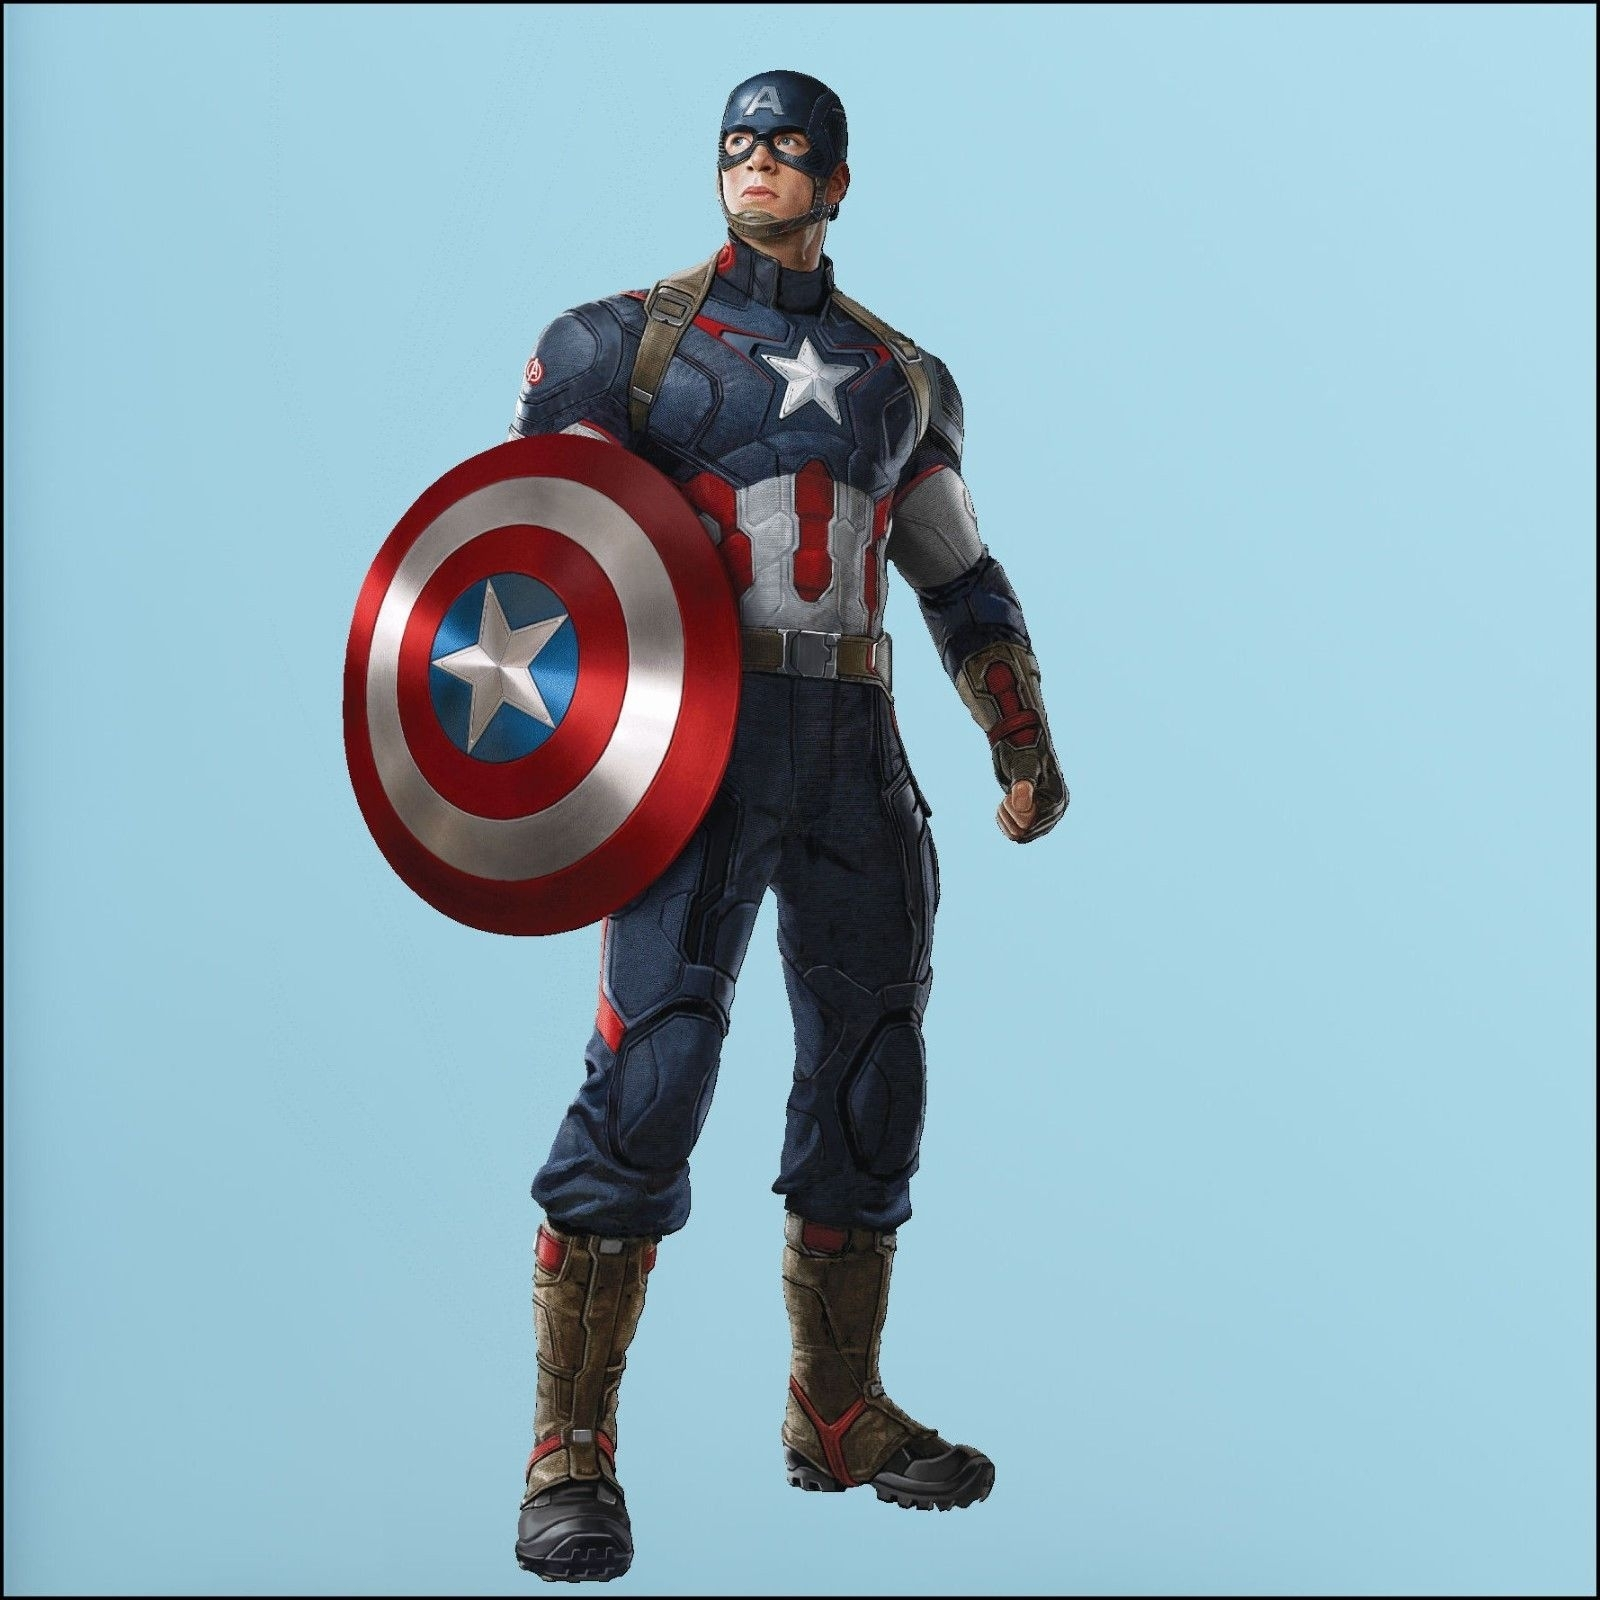 Captain America Avengers Photo Quality 3d Wall Sticker Art Mural With Regard To Most Up To Date Captain America Wall Art (View 15 of 15)